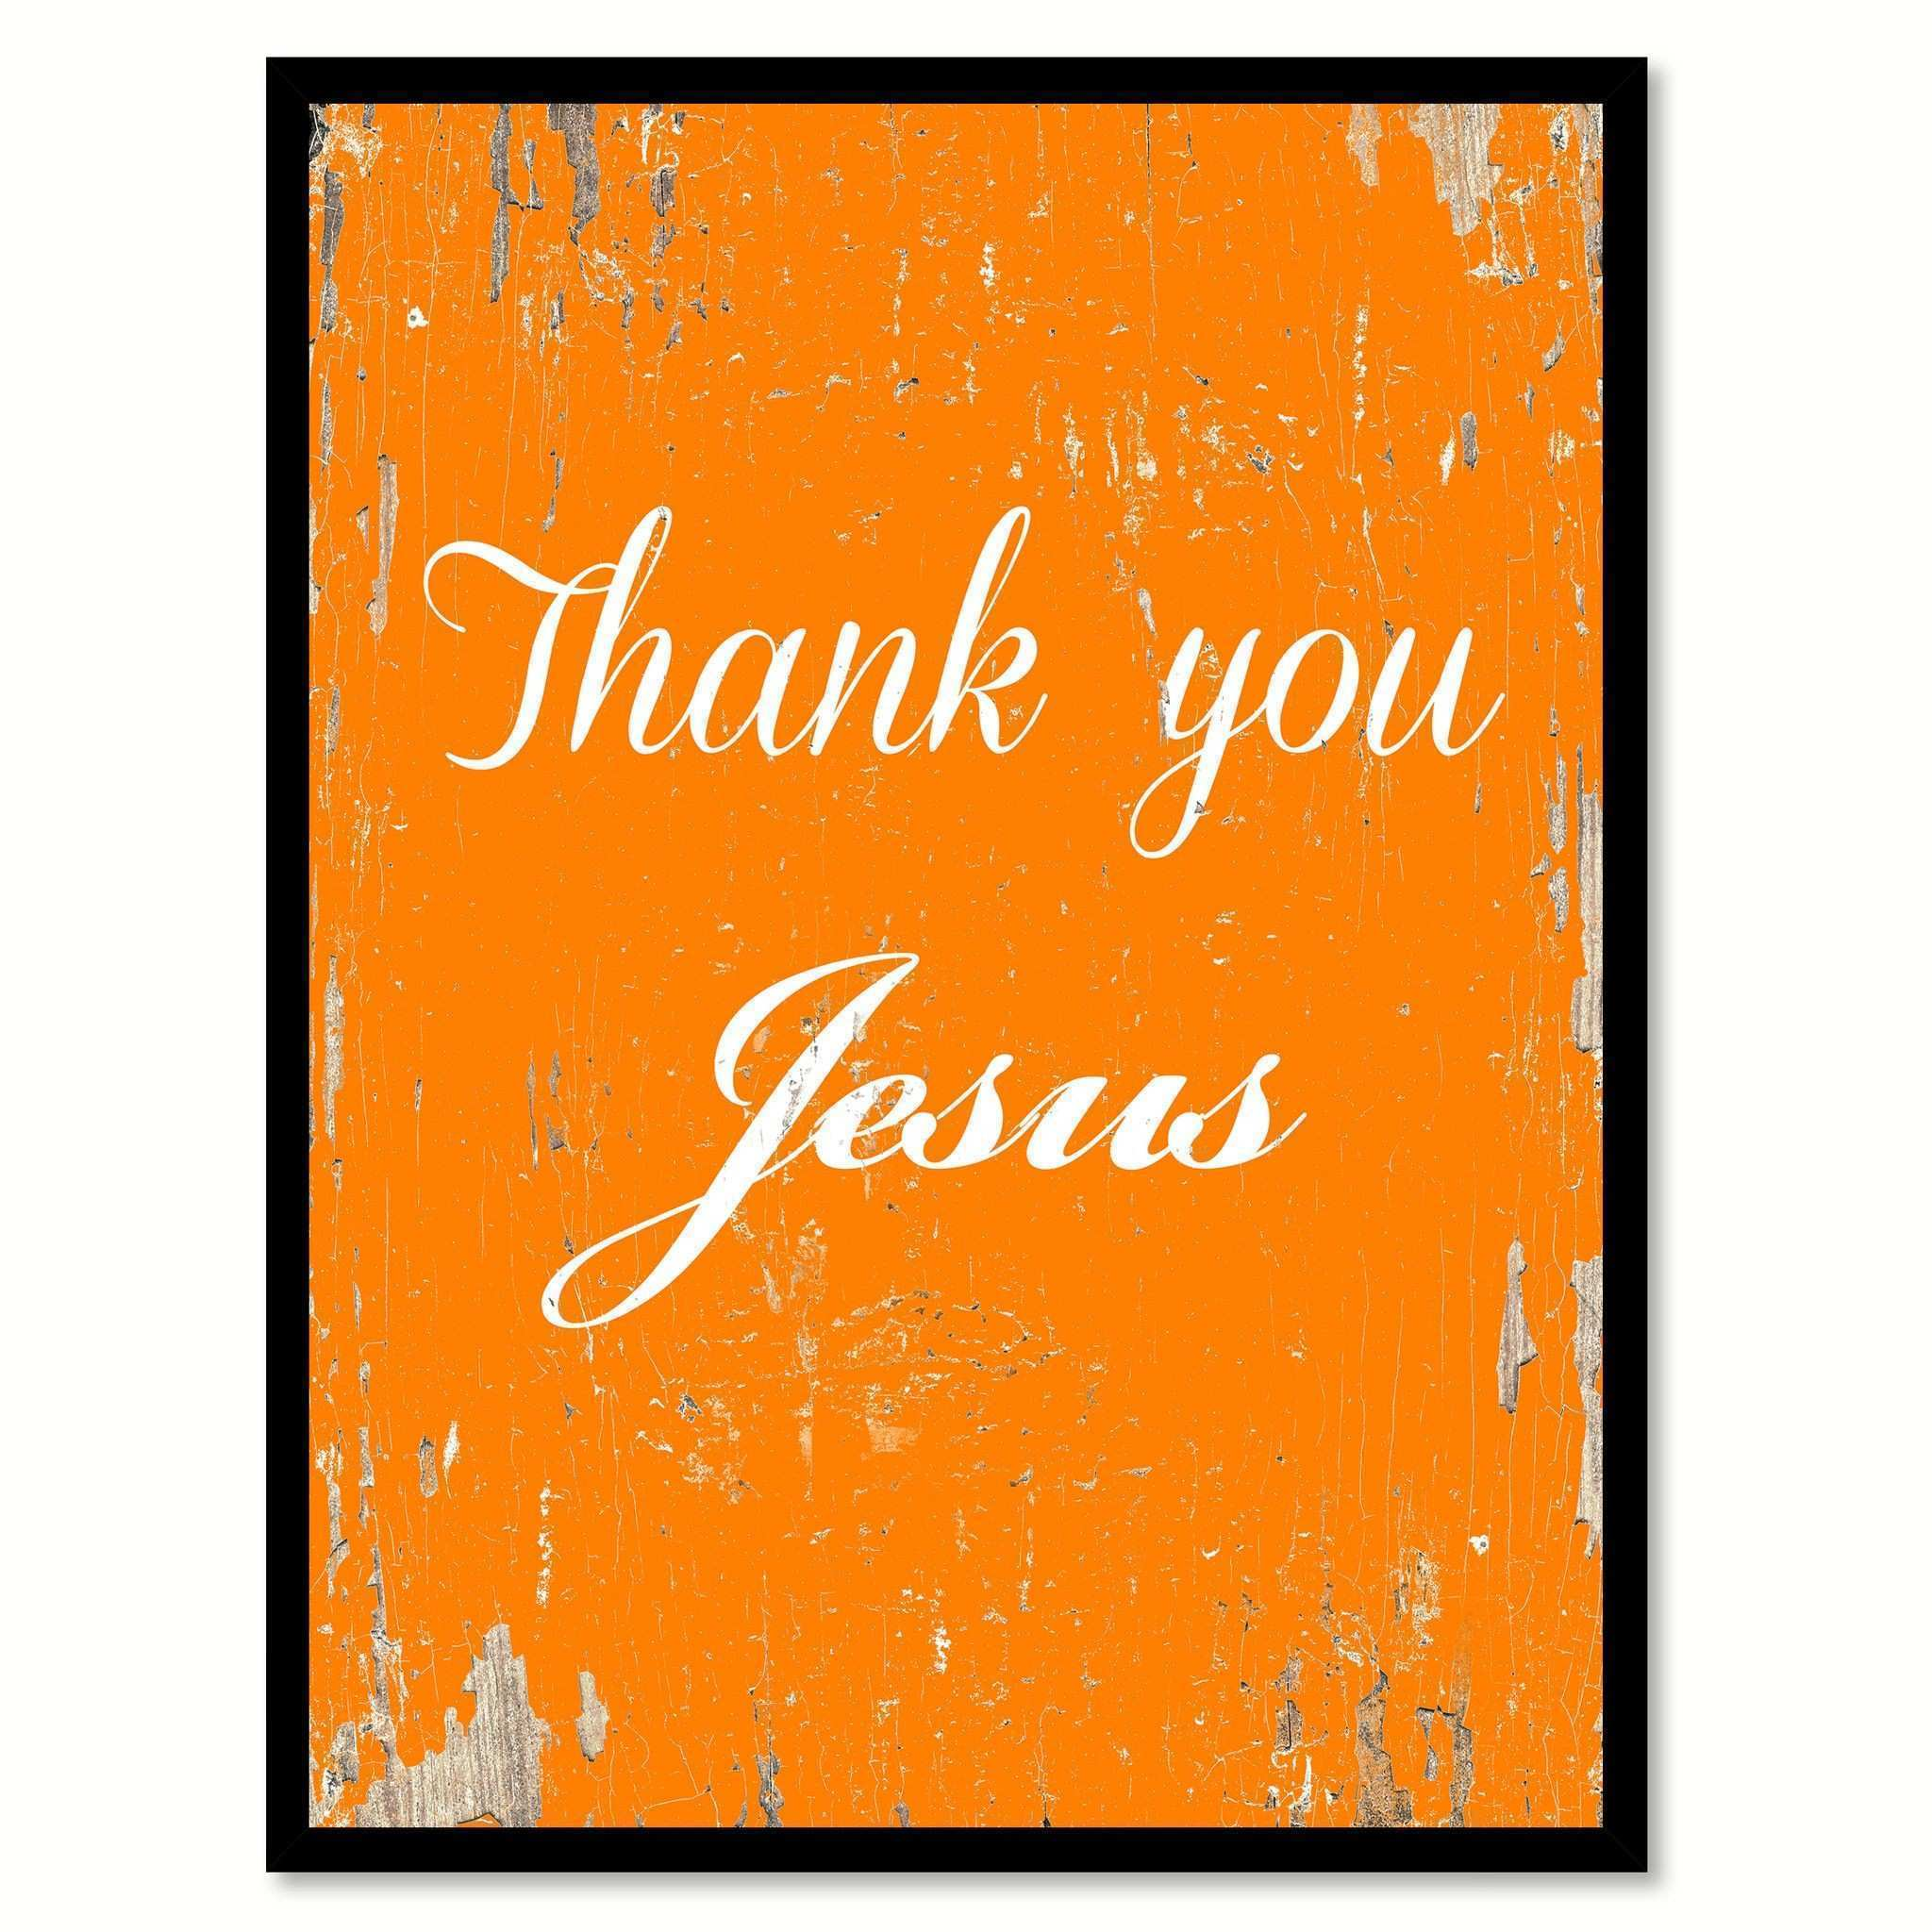 Decorative Wall Plaques Quotes Lovely Thank You Jesus Quote Saying